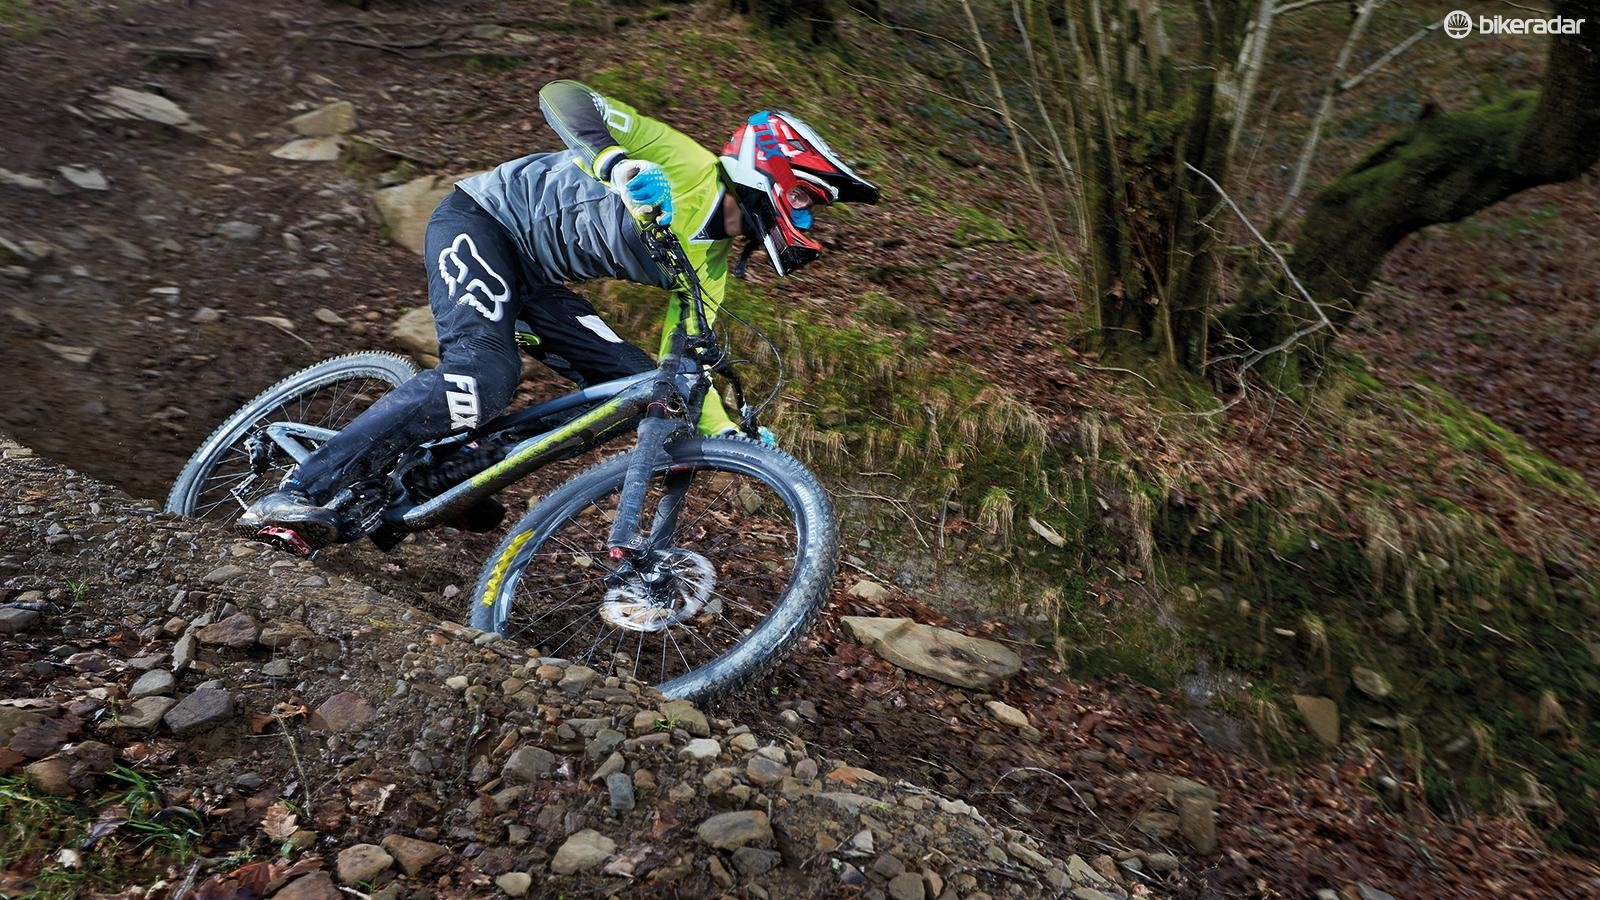 SRAM GX DH, Guide RE brakes and a Charger-damped BoXXer Team fork